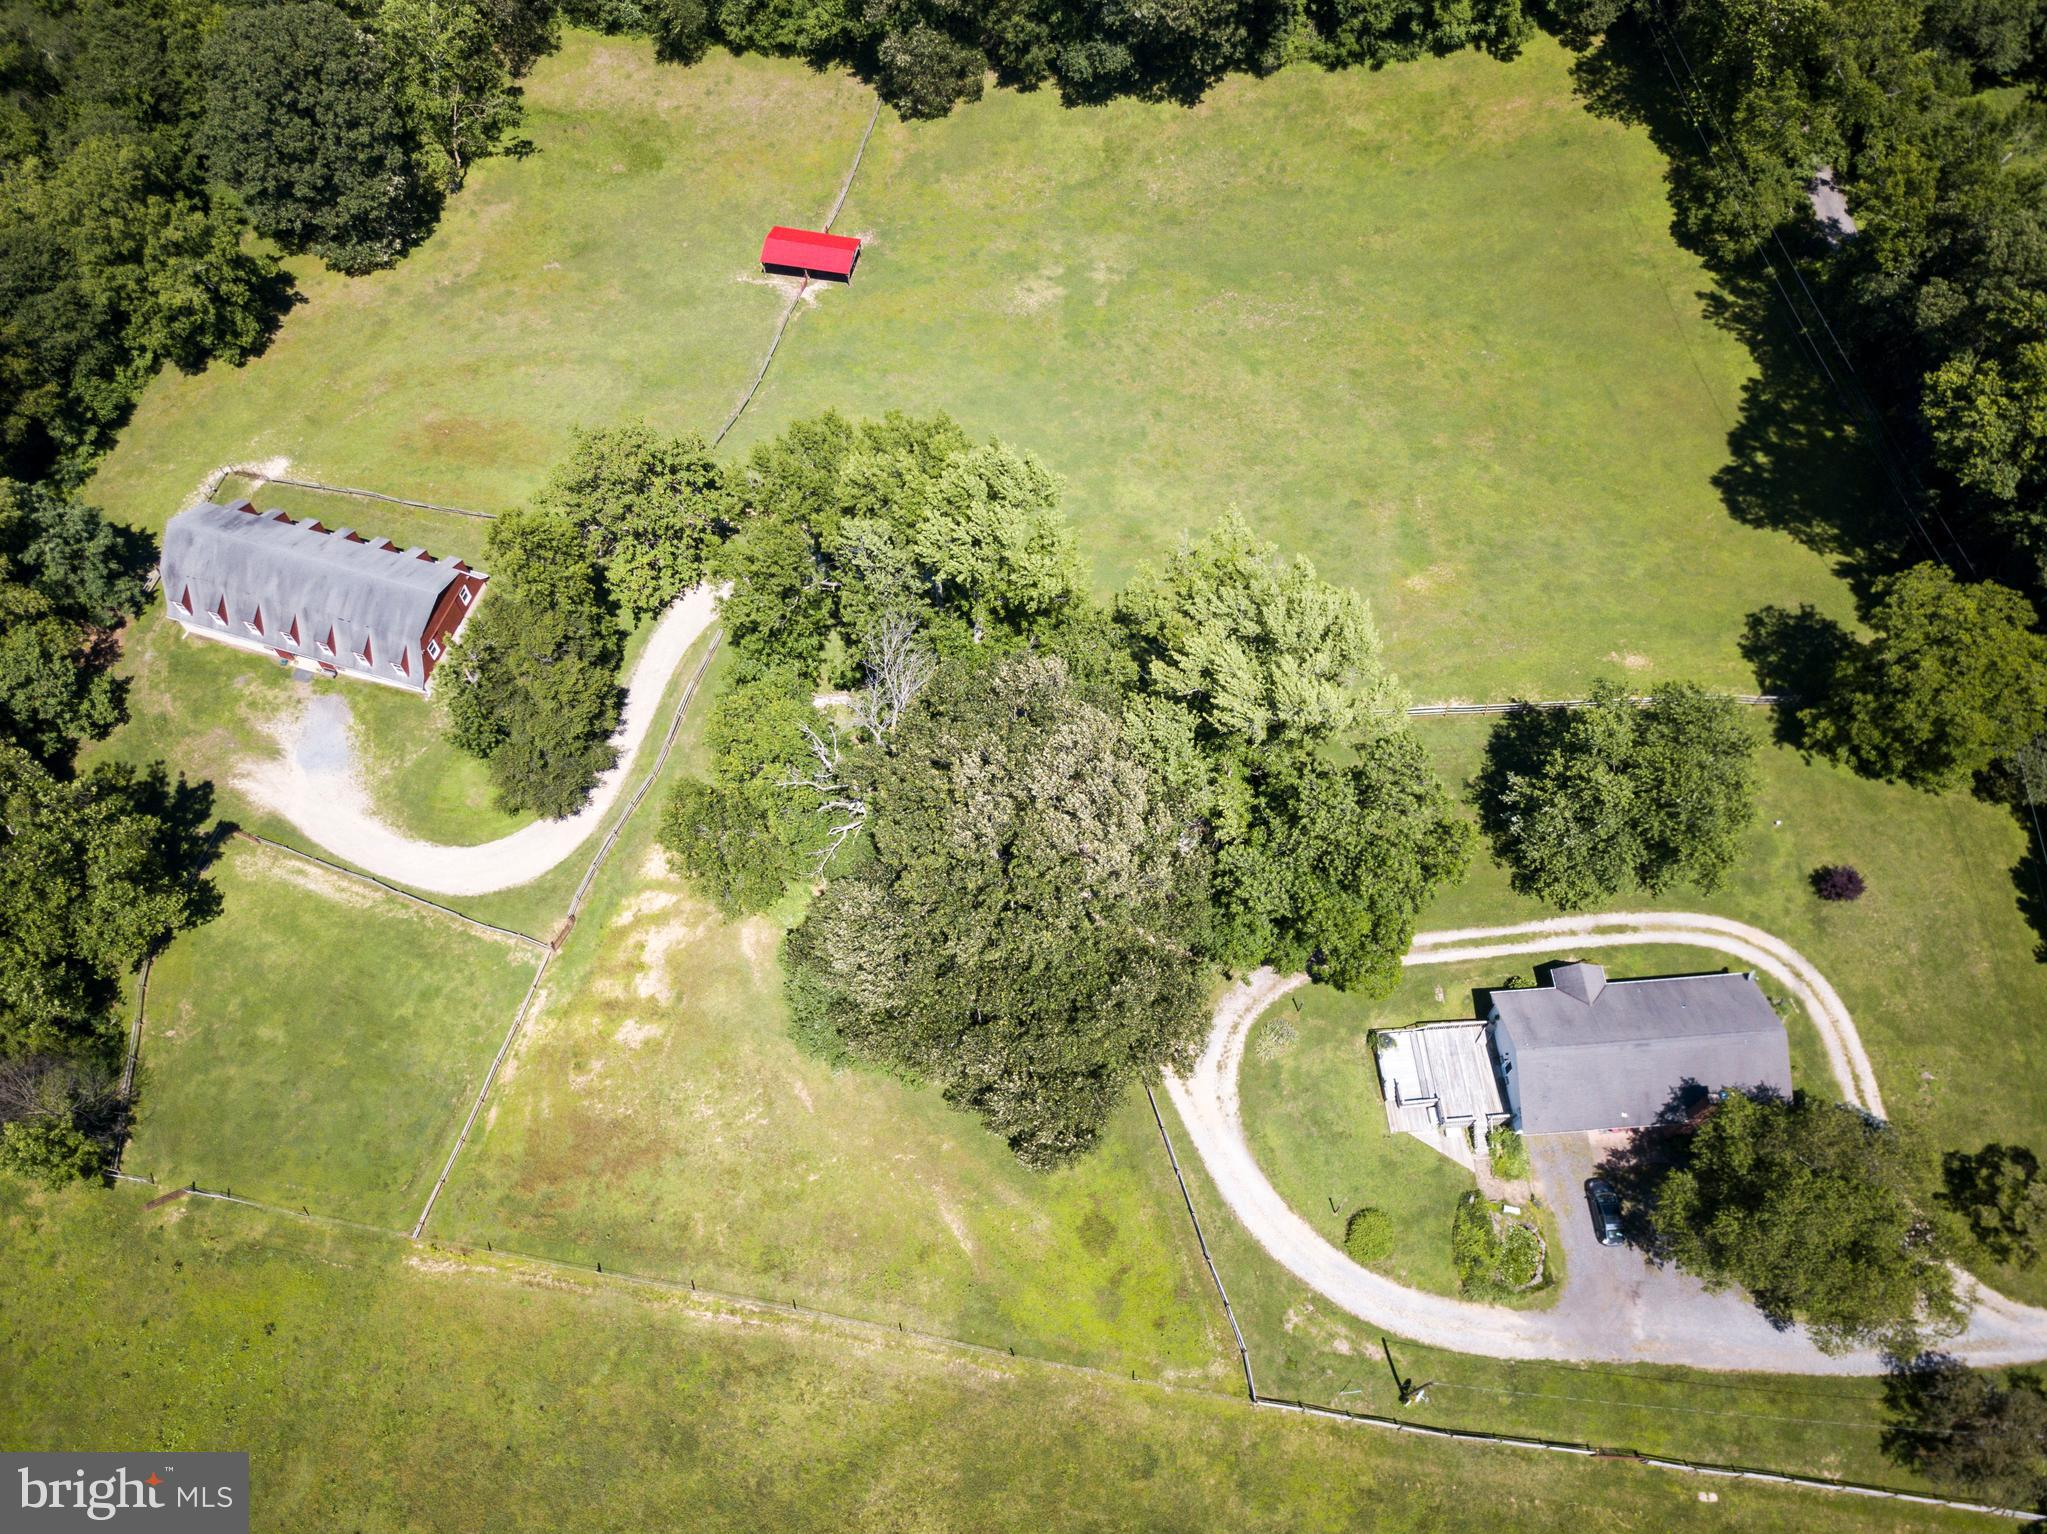 Horse lovers look no further!! Over 12 acres of rolling fields surrounded by mature trees and fencing.  The spacious 2 story horse barn was architecturally designed by DuPont.  This custom barn offers ten 12x12 adjustable stalls.  Stalls can be made 24x24 or 36x36 for birthing or breeding.  Tongue and groove (no nails anywhere) solid oak board stalls, a feed room, tack room, wash area with drainage, drive up hay bale opening, as well as 5 storage units with electric in the loft just to name the basics.  The barn also offers custom drainage features, reinforced cable for structural integrity and is a well cared for space for the horses and horse owners!  The property offers six fenced in pasture areas, a run-in shed and a stud barn.  Thank advantage of your own private riding trails, rolling hills for plenty of exercise, a stream and a potential for a riding ring.  A loving cared for ranch home sits at the top of the hill overlooking the beautiful 12+ acres.  The house offers hardwood floors, fireplace, french doors, a possible small 3rd  bedroom or office (currently a laundry room)on the upper level and 2 car garage.  The lower level of the house has a separate in-law apartment or au-pair suite with kitchen, granite counter tops, separate bathroom and separate entrance,  The seller currently participates with an optional land preservation trust program through AA county resulting in reduced real estate taxes that are currently less than $1,000/year.  That saves thousands of dollars per year!  Other possible uses for this property are as a winery or wedding venue.  We can provide list of features of the property. 24 hour showing notice.  This is located at the end of the road and is not an easy drive by property.